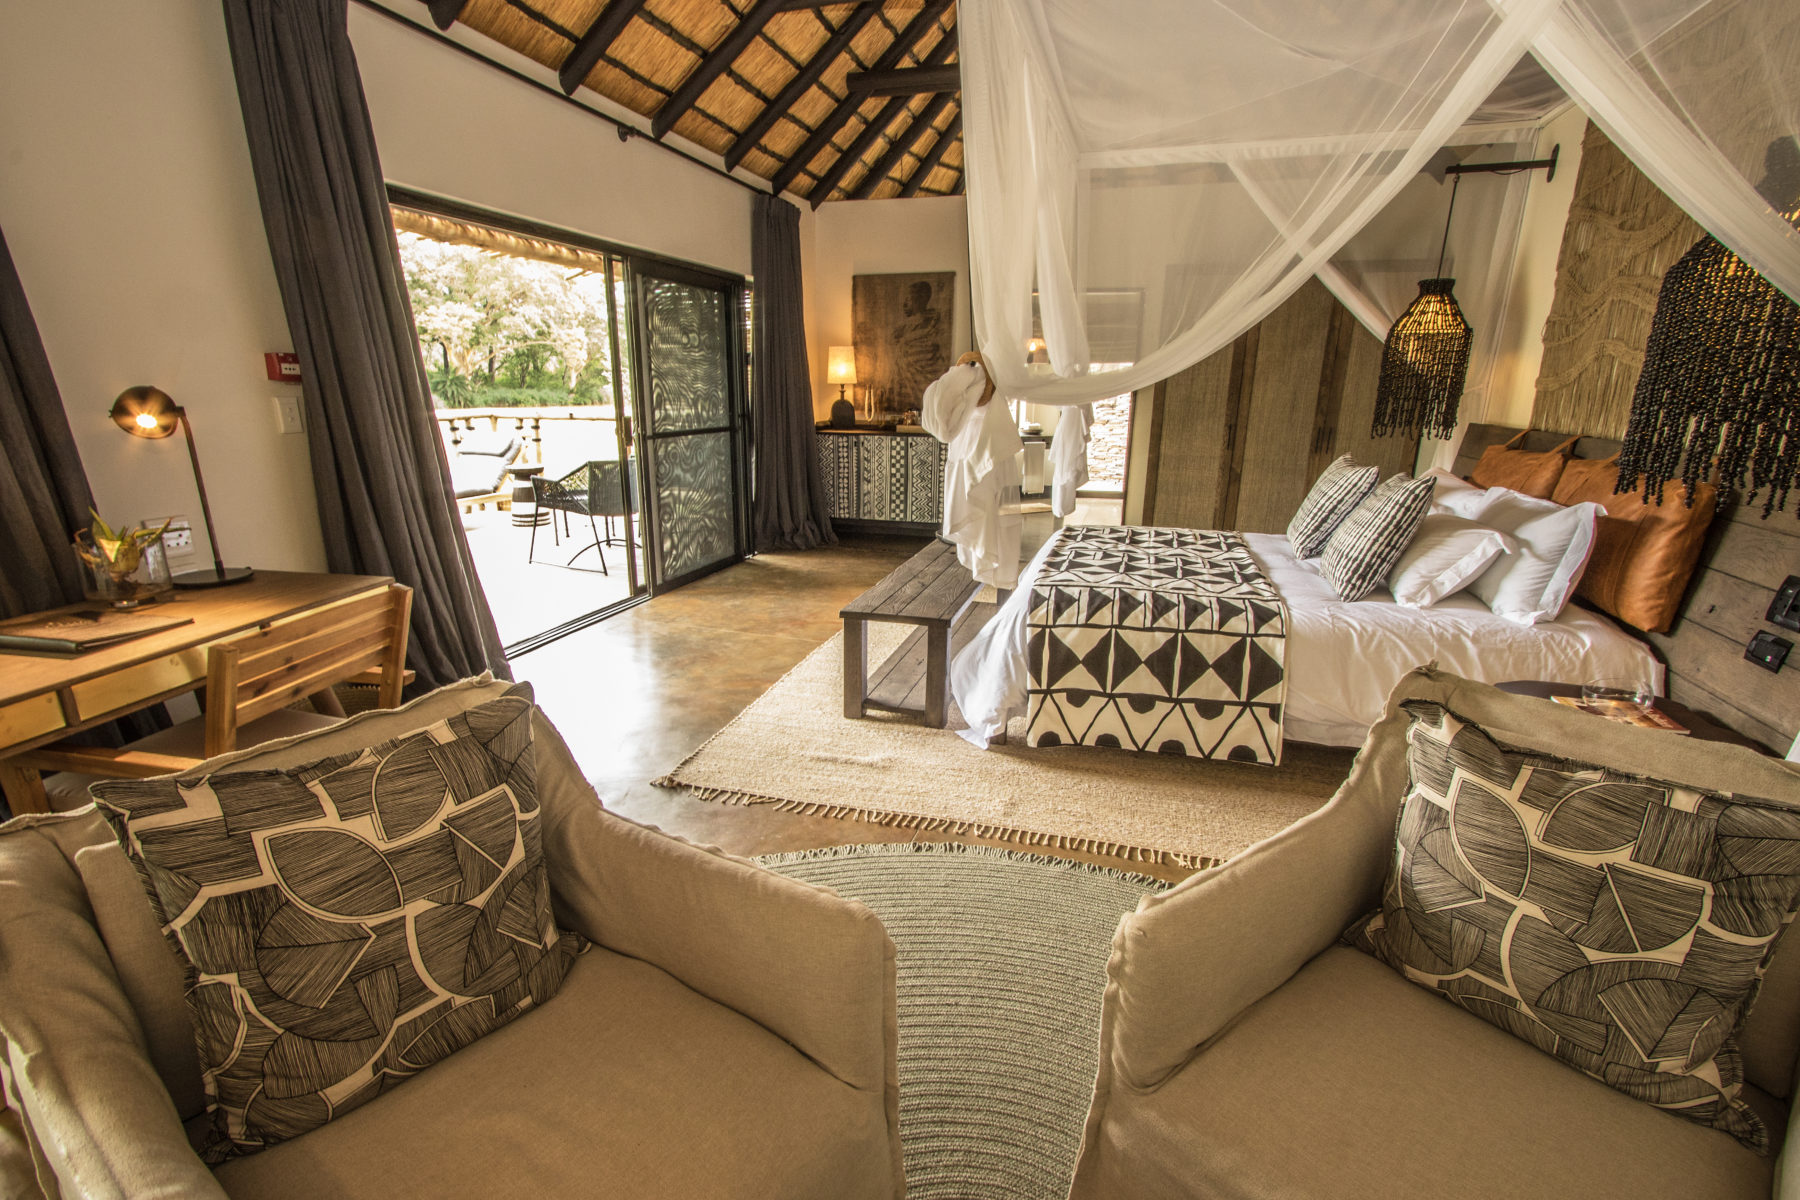 FIRST LOOK AT LIMPOPO'S NEWEST SAFARI DESTINATION – ABELANA GAME RESERVE